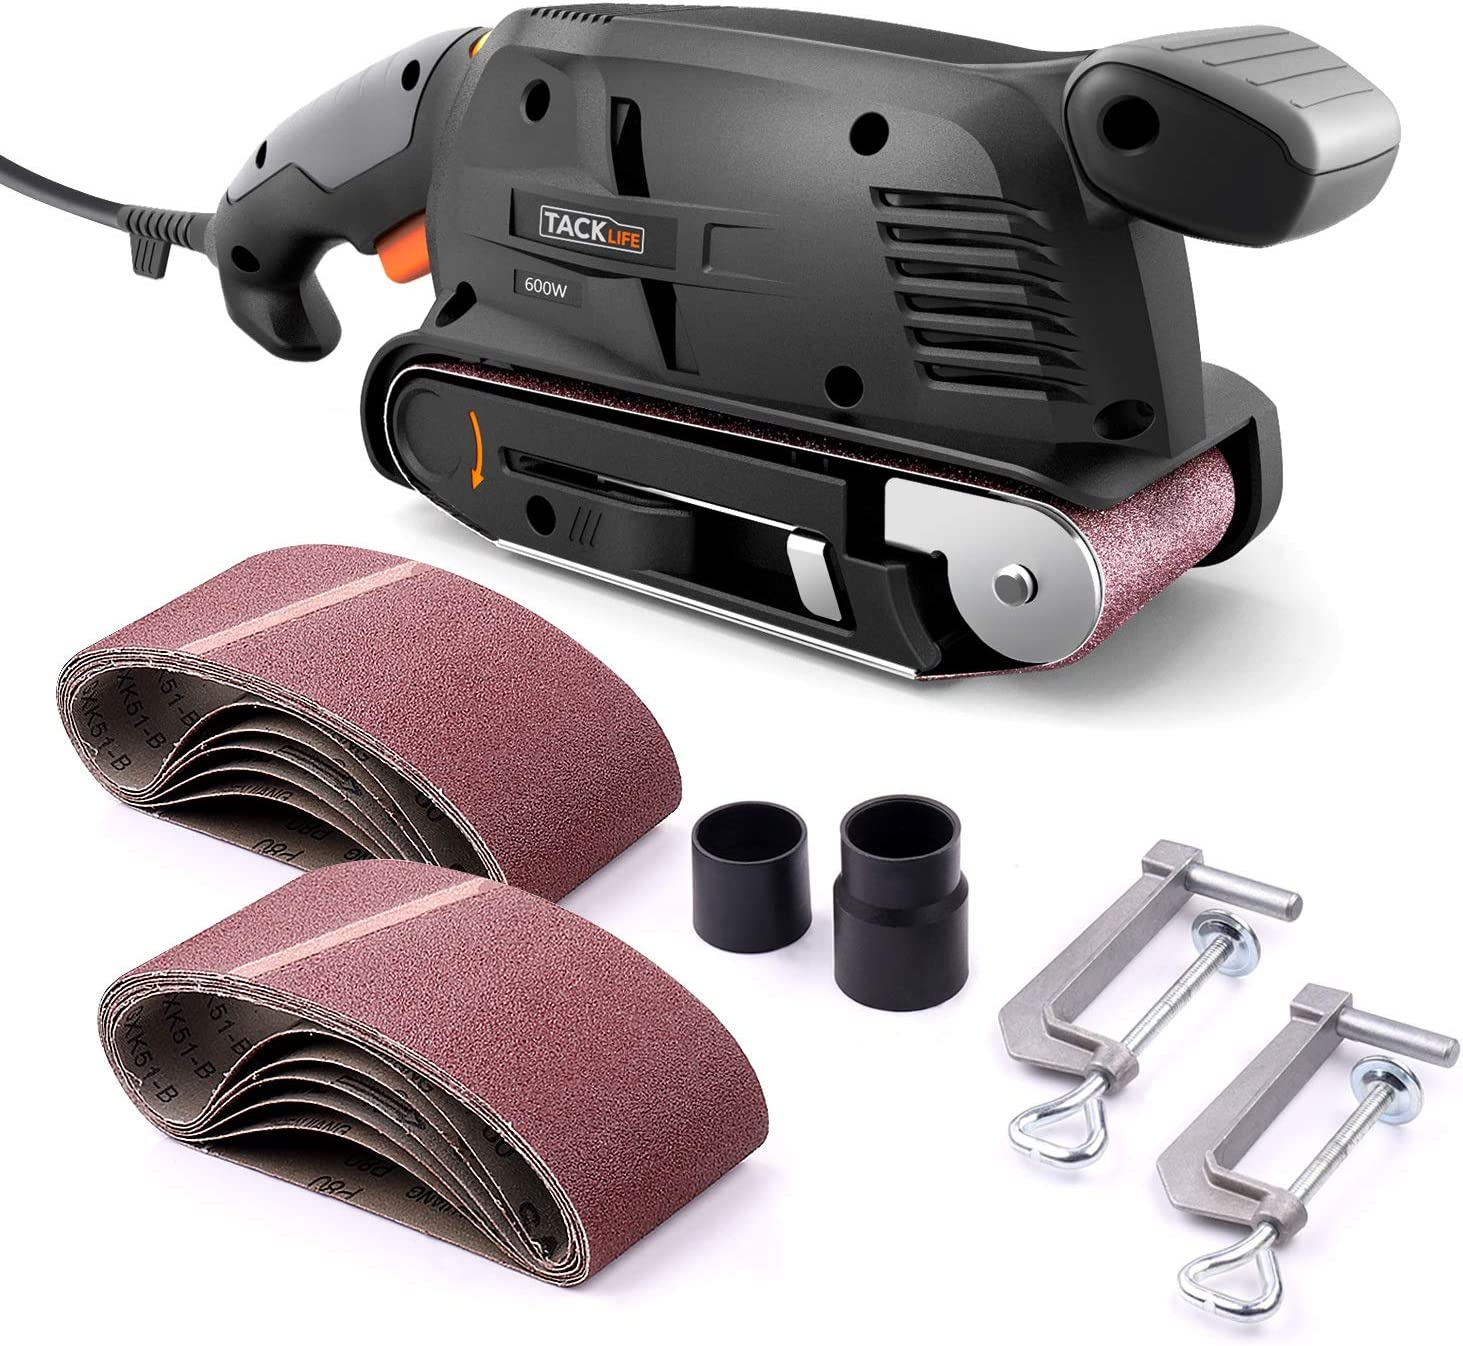 TACKLIFE PSFS1A Bench Sander Variable-speed Control